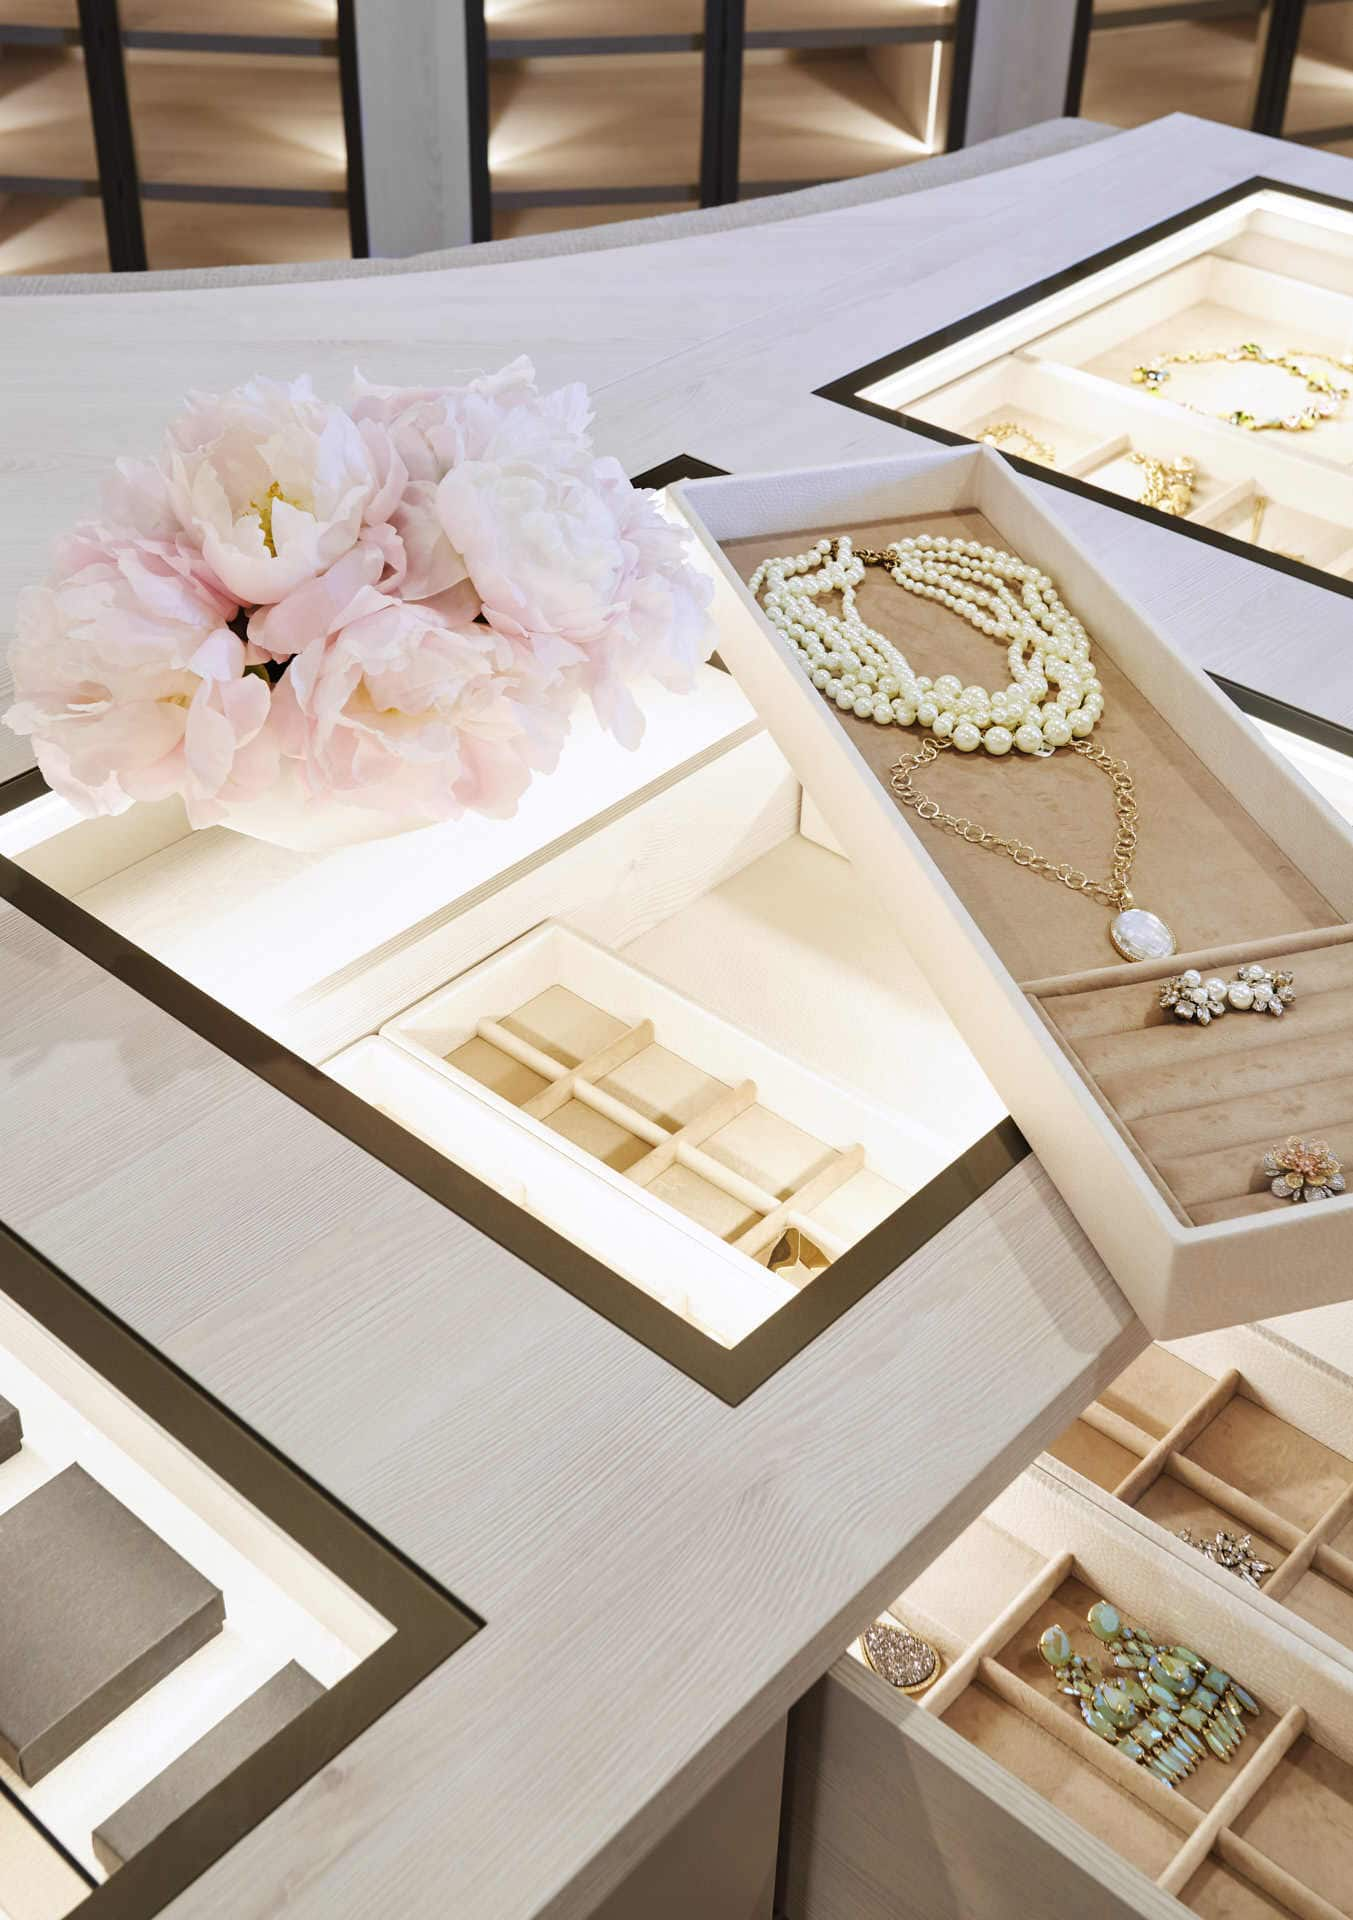 high-end drawer inserts for accessories such as jewelry